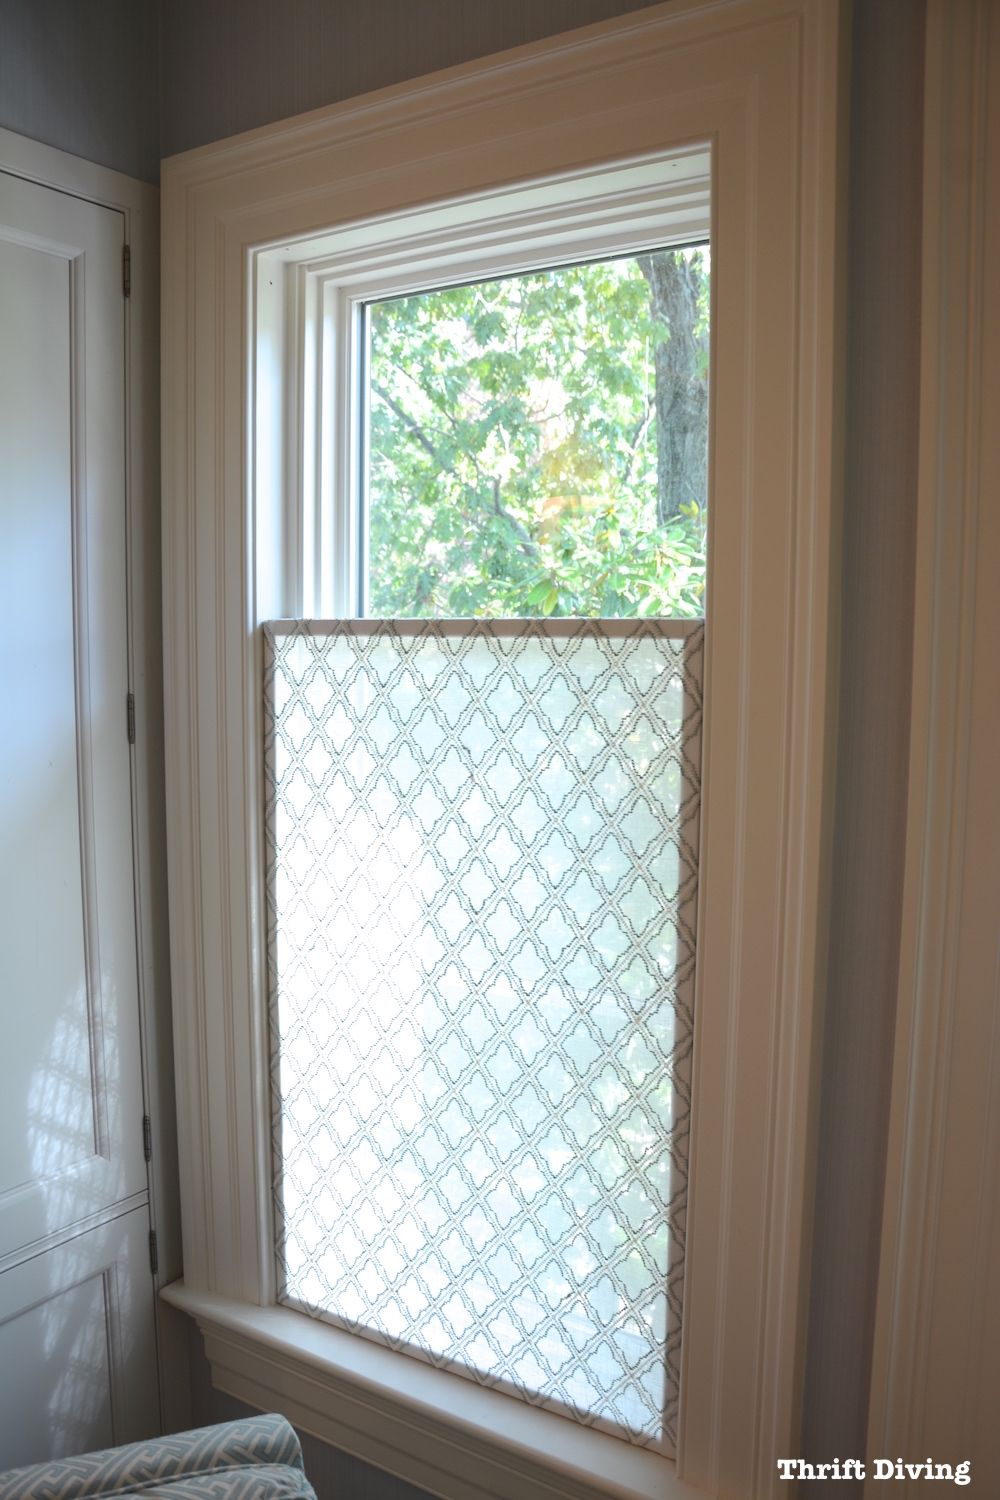 How to make a pretty diy window privacy screen awesome shit